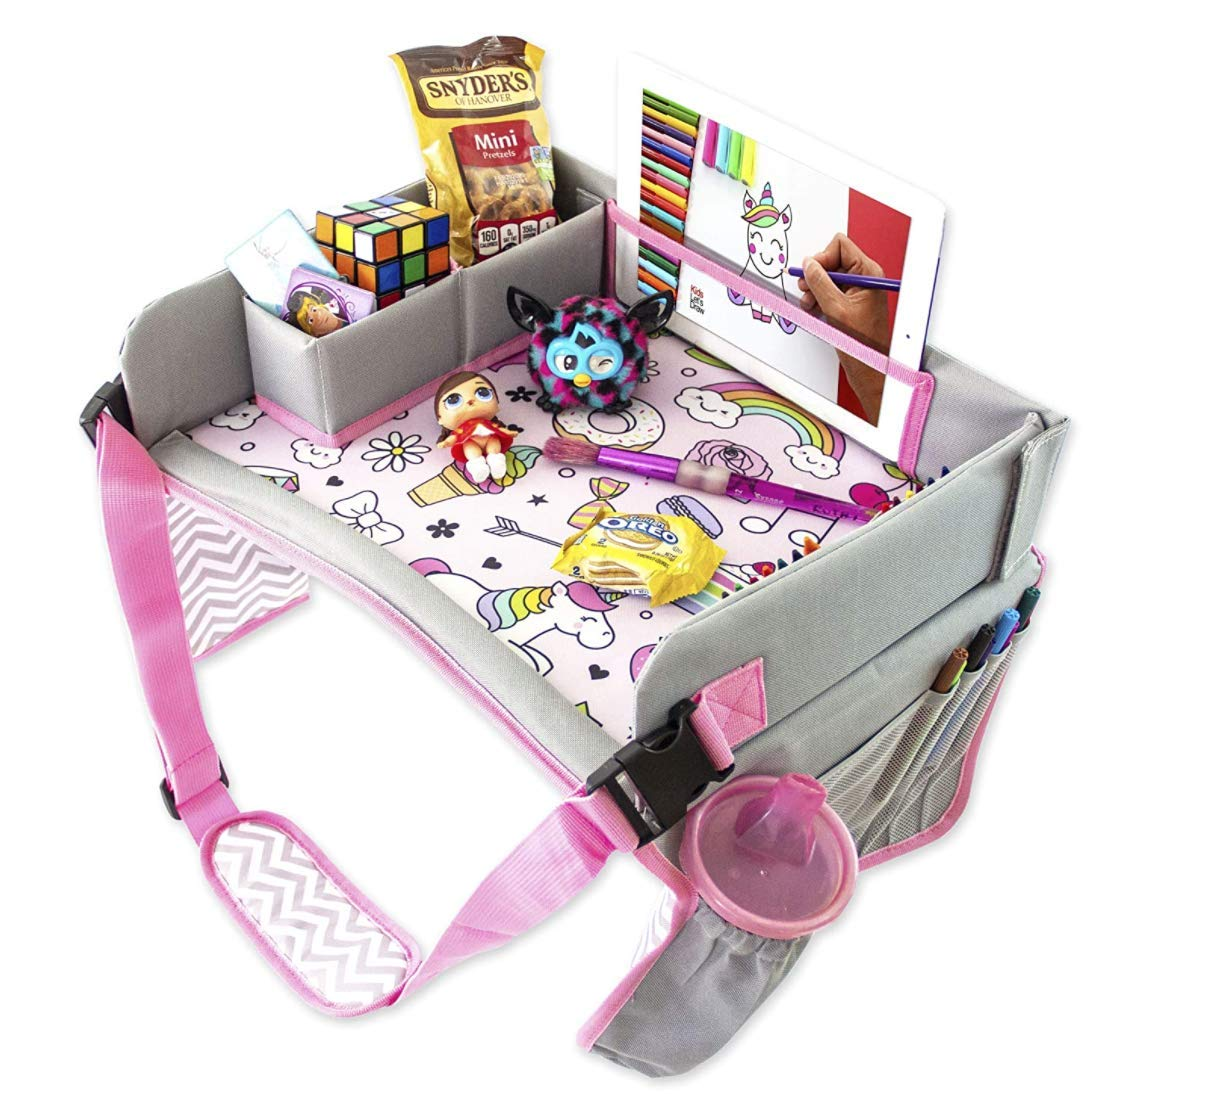 Thr33E Car Seat Kids Travel Tray - Travel Lap Desk Active Accessory for Child's - Kids Tablet iPad Holder Stand Art Storage Pockets (Pink)